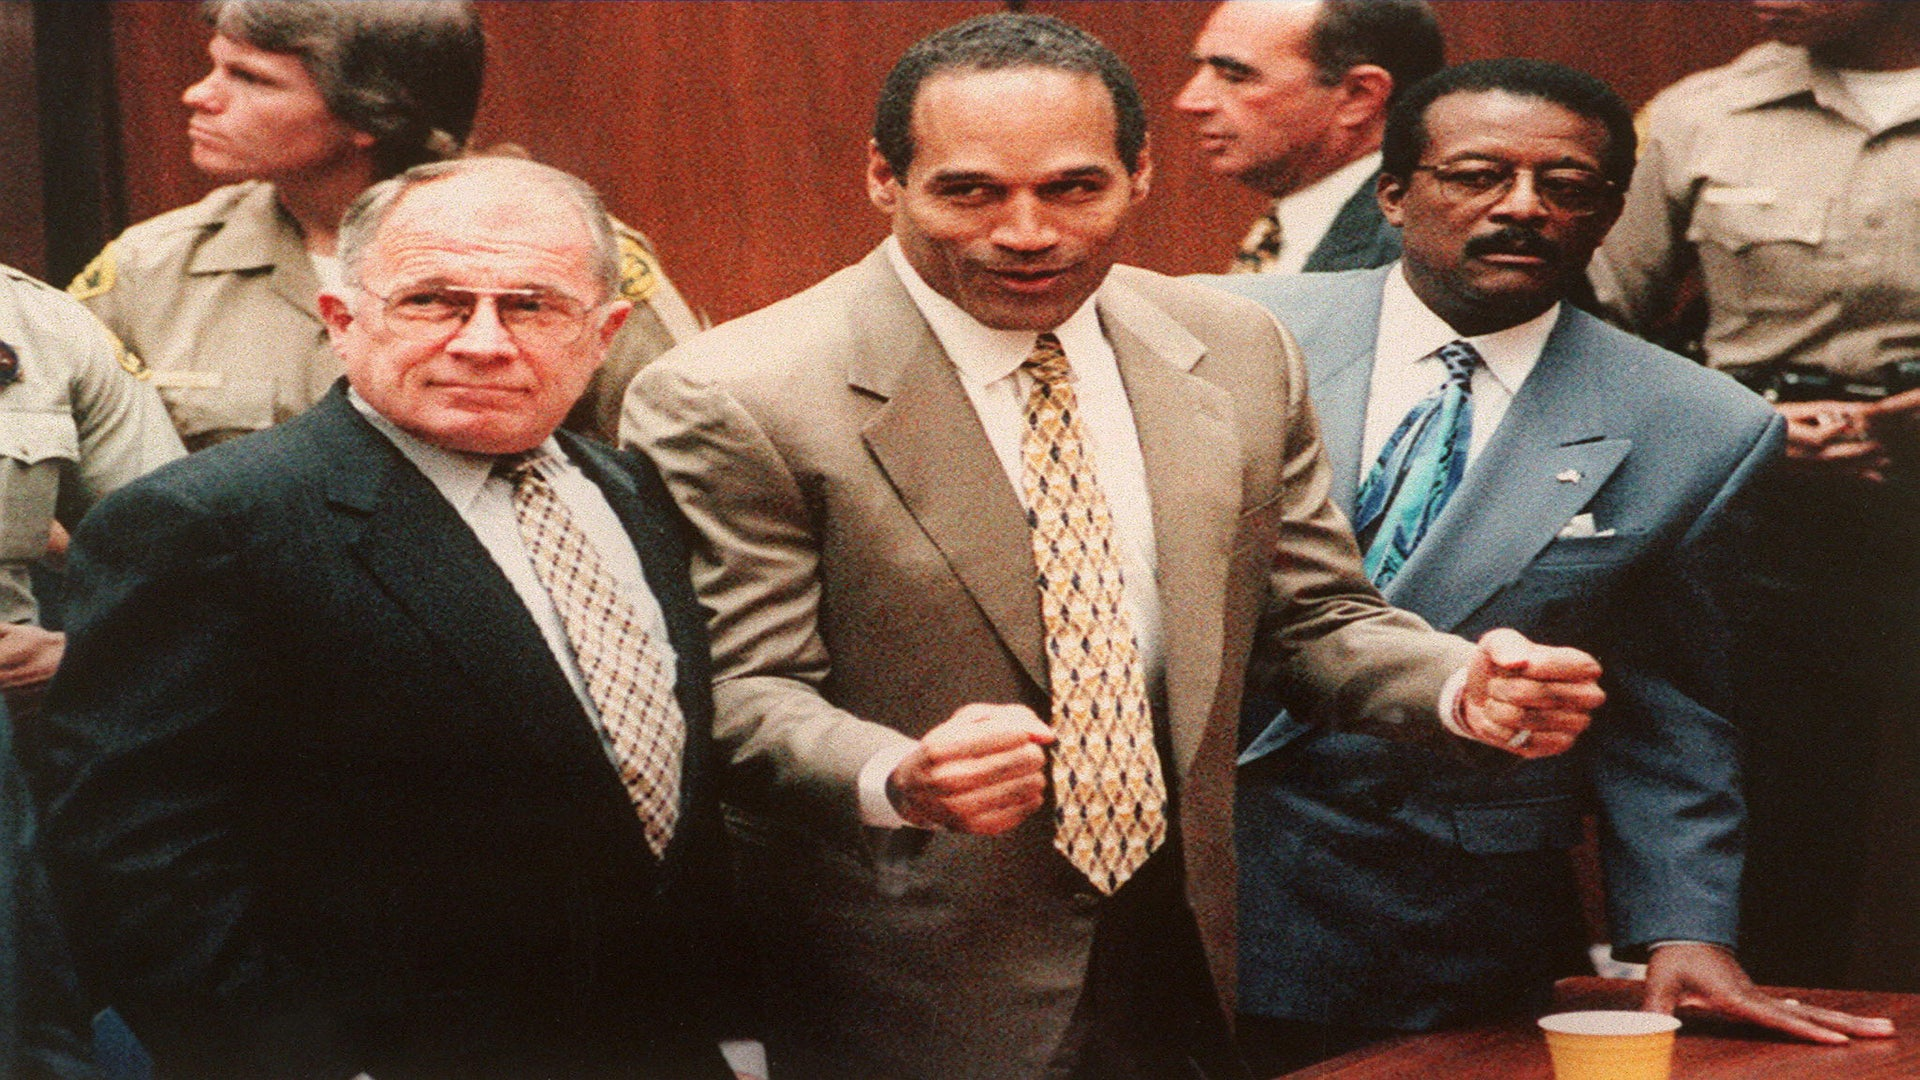 Knife Found at O.J. Simpson's Former Home Ruled Out as Murder Weapon